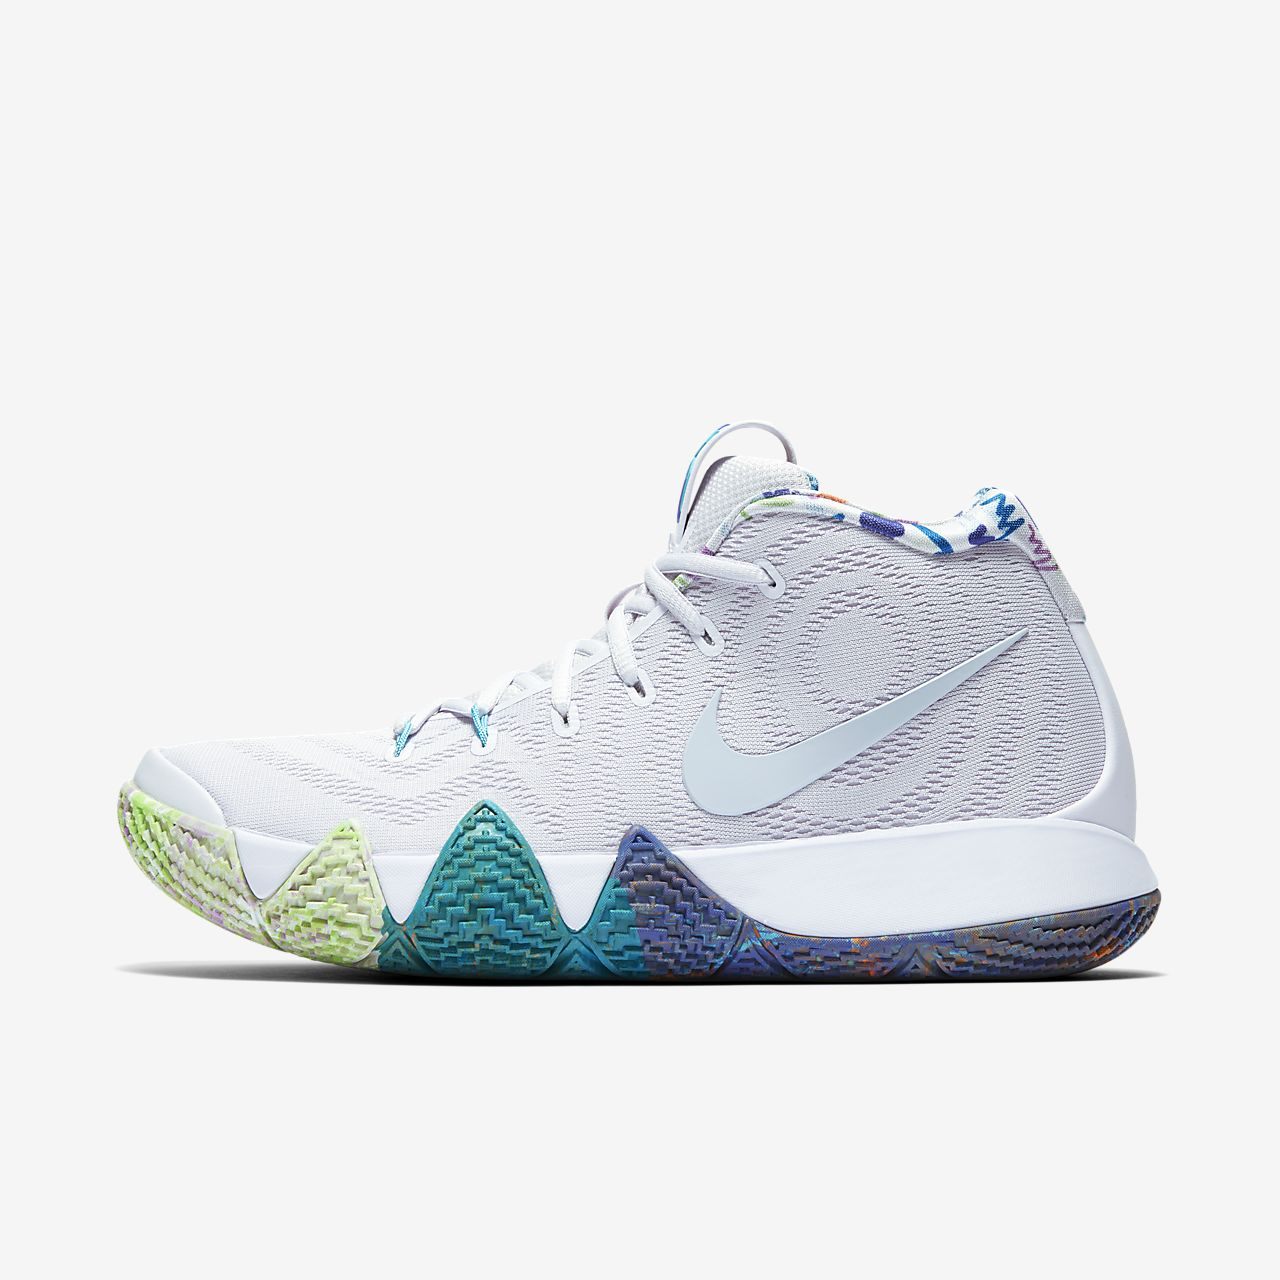 Kyrie 4 90s Basketball Shoe